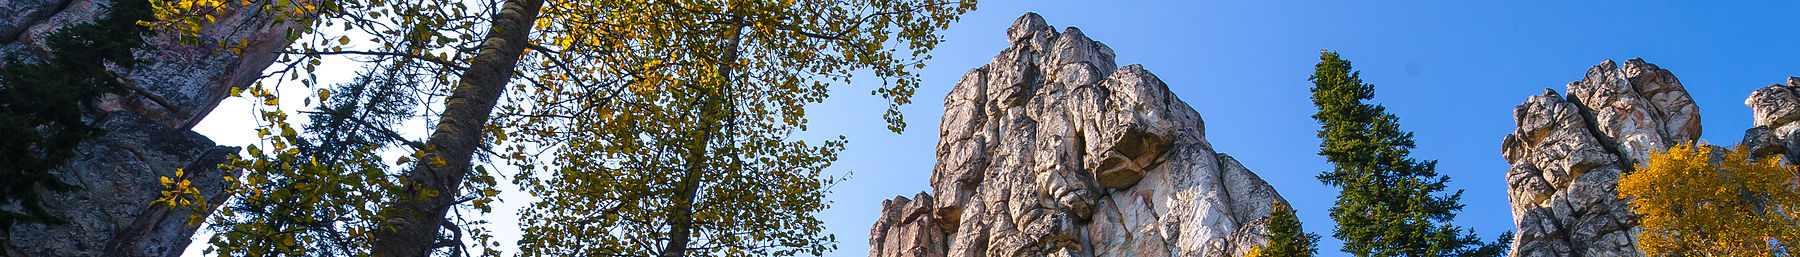 The towering rocks and trees in the Beloretsk Raion of Bashkortoston, which is often known for its highly scenic nature